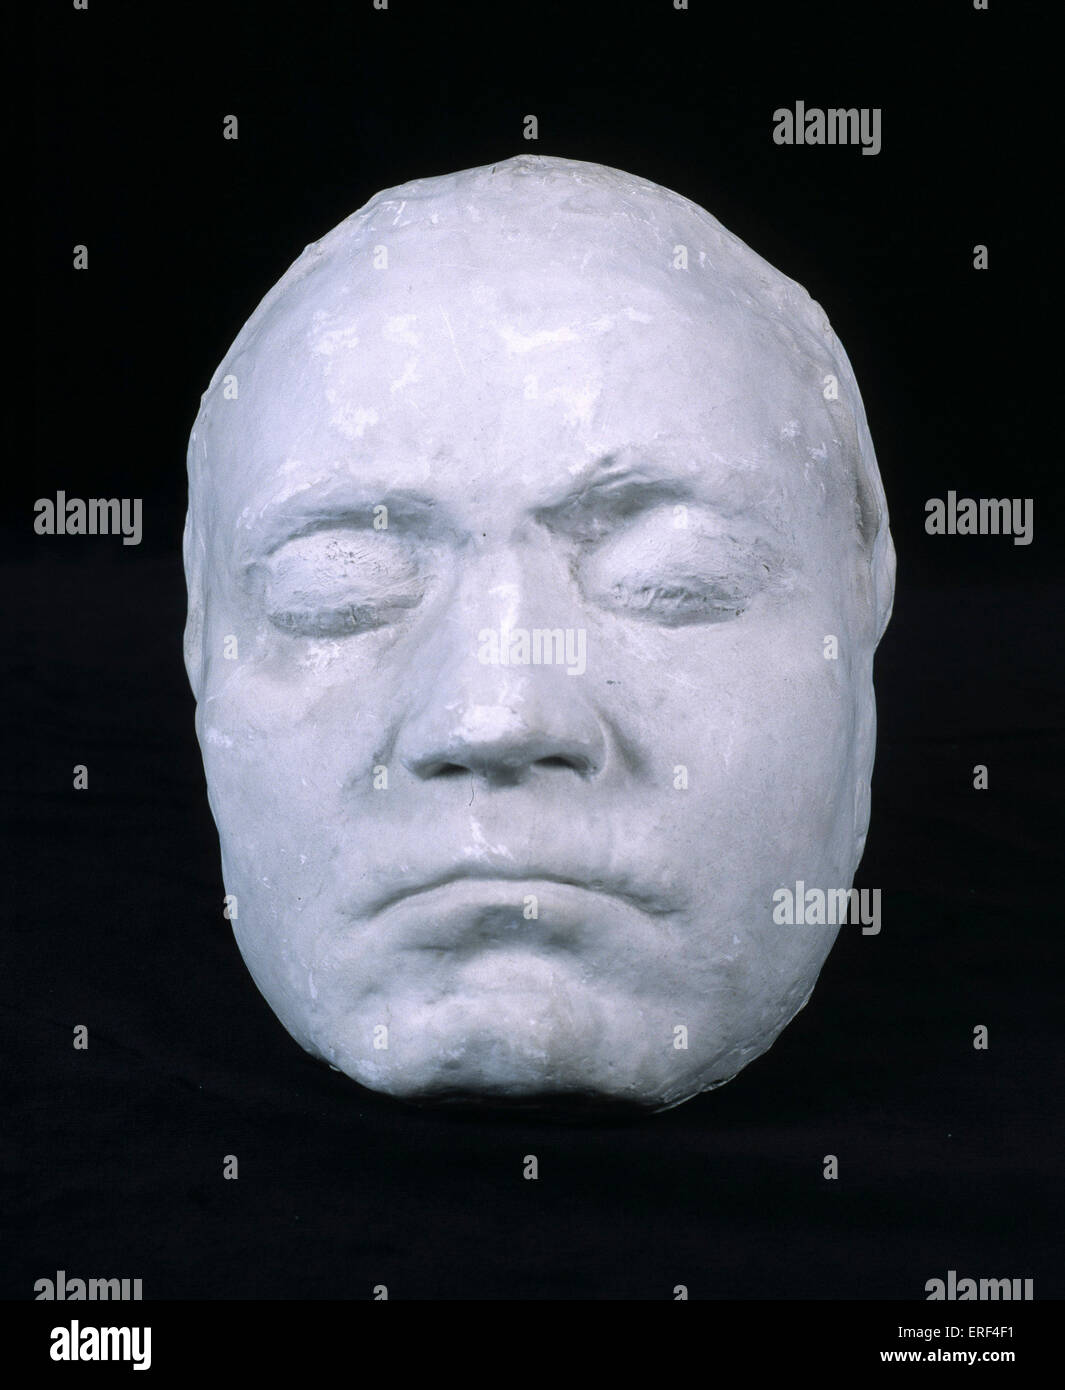 BEETHOVEN, Ludwig van - Life Mask made in 1812 while B was working on 7th Symphony.  Mould made by Franz Klein. Stock Photo